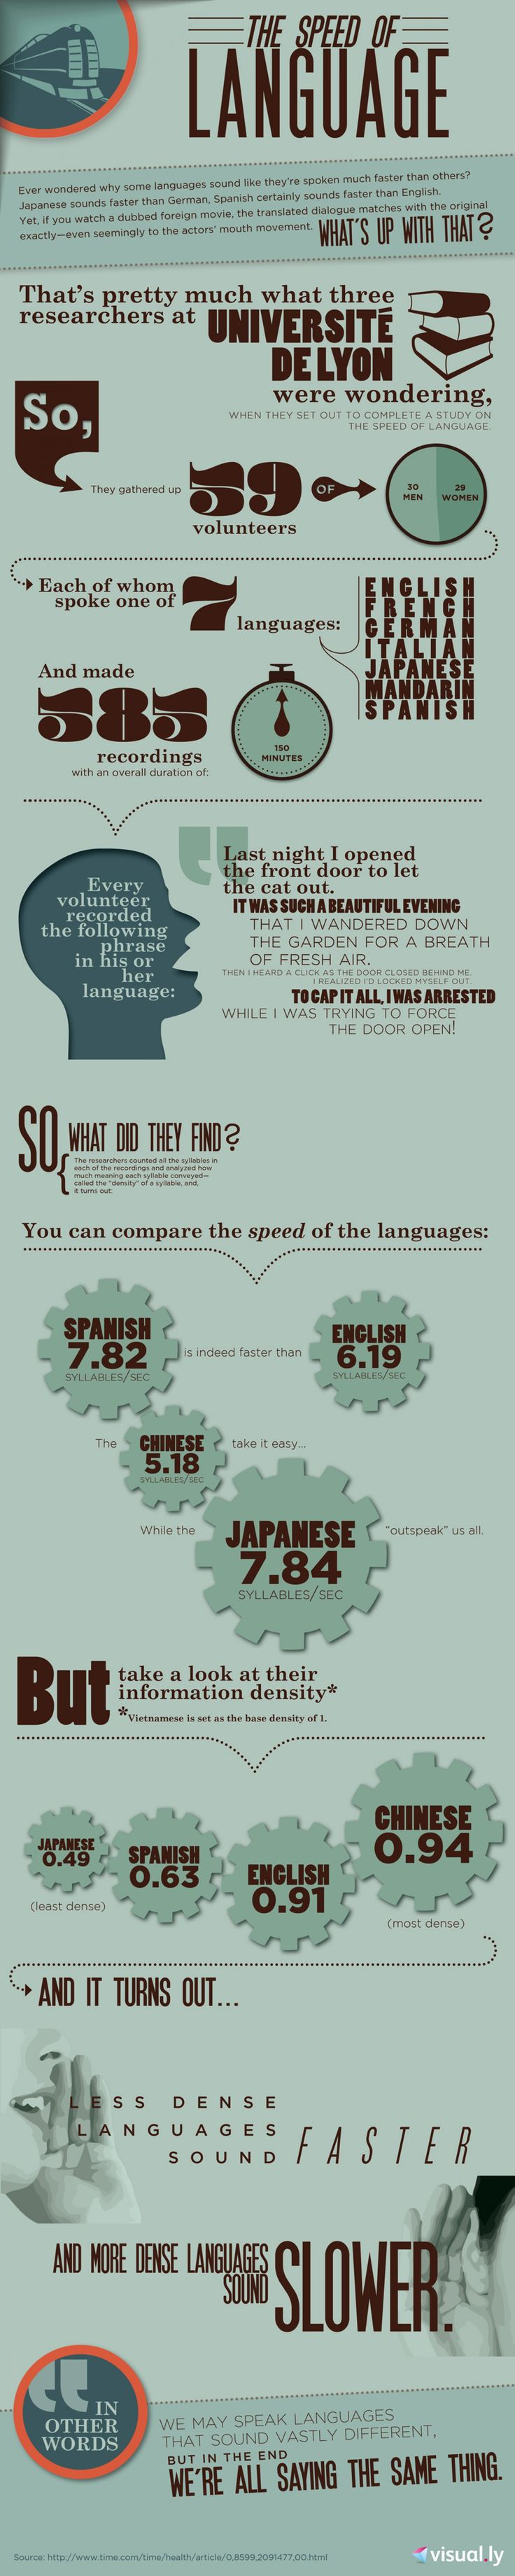 9 best Linguistic theory images on Pinterest | Languages, School and ...